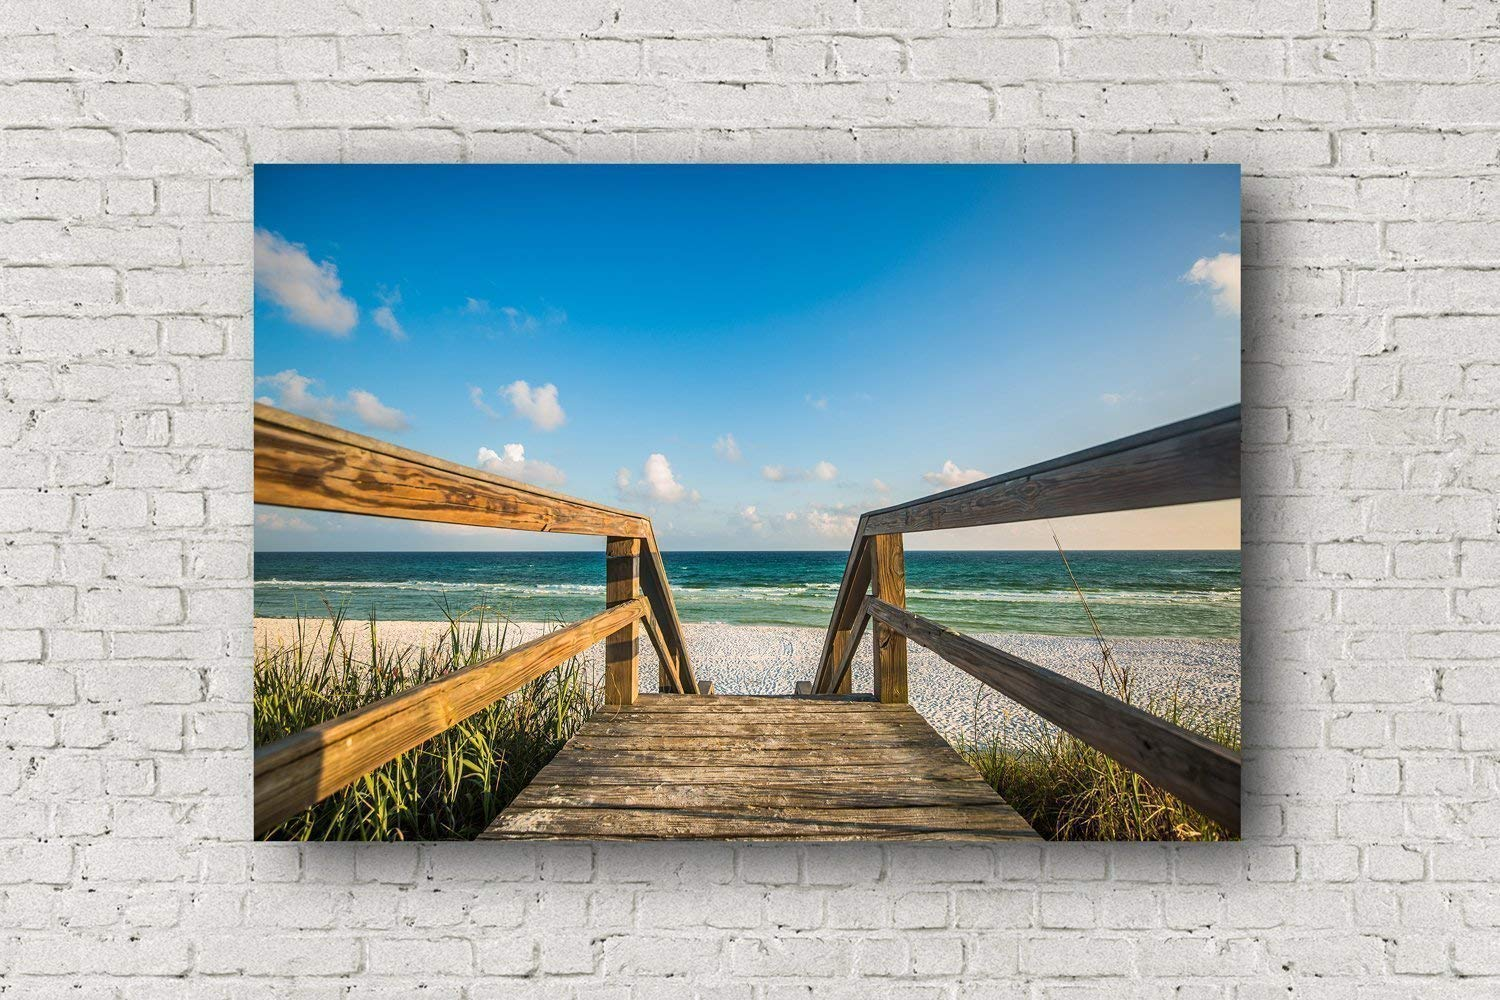 Beach Canvas Wall Art - Gallery Wrapped Canvas of Boardwalk Leading to Beach Near Destin Florida Beachhouse Home Decor 8x10 to 30x40